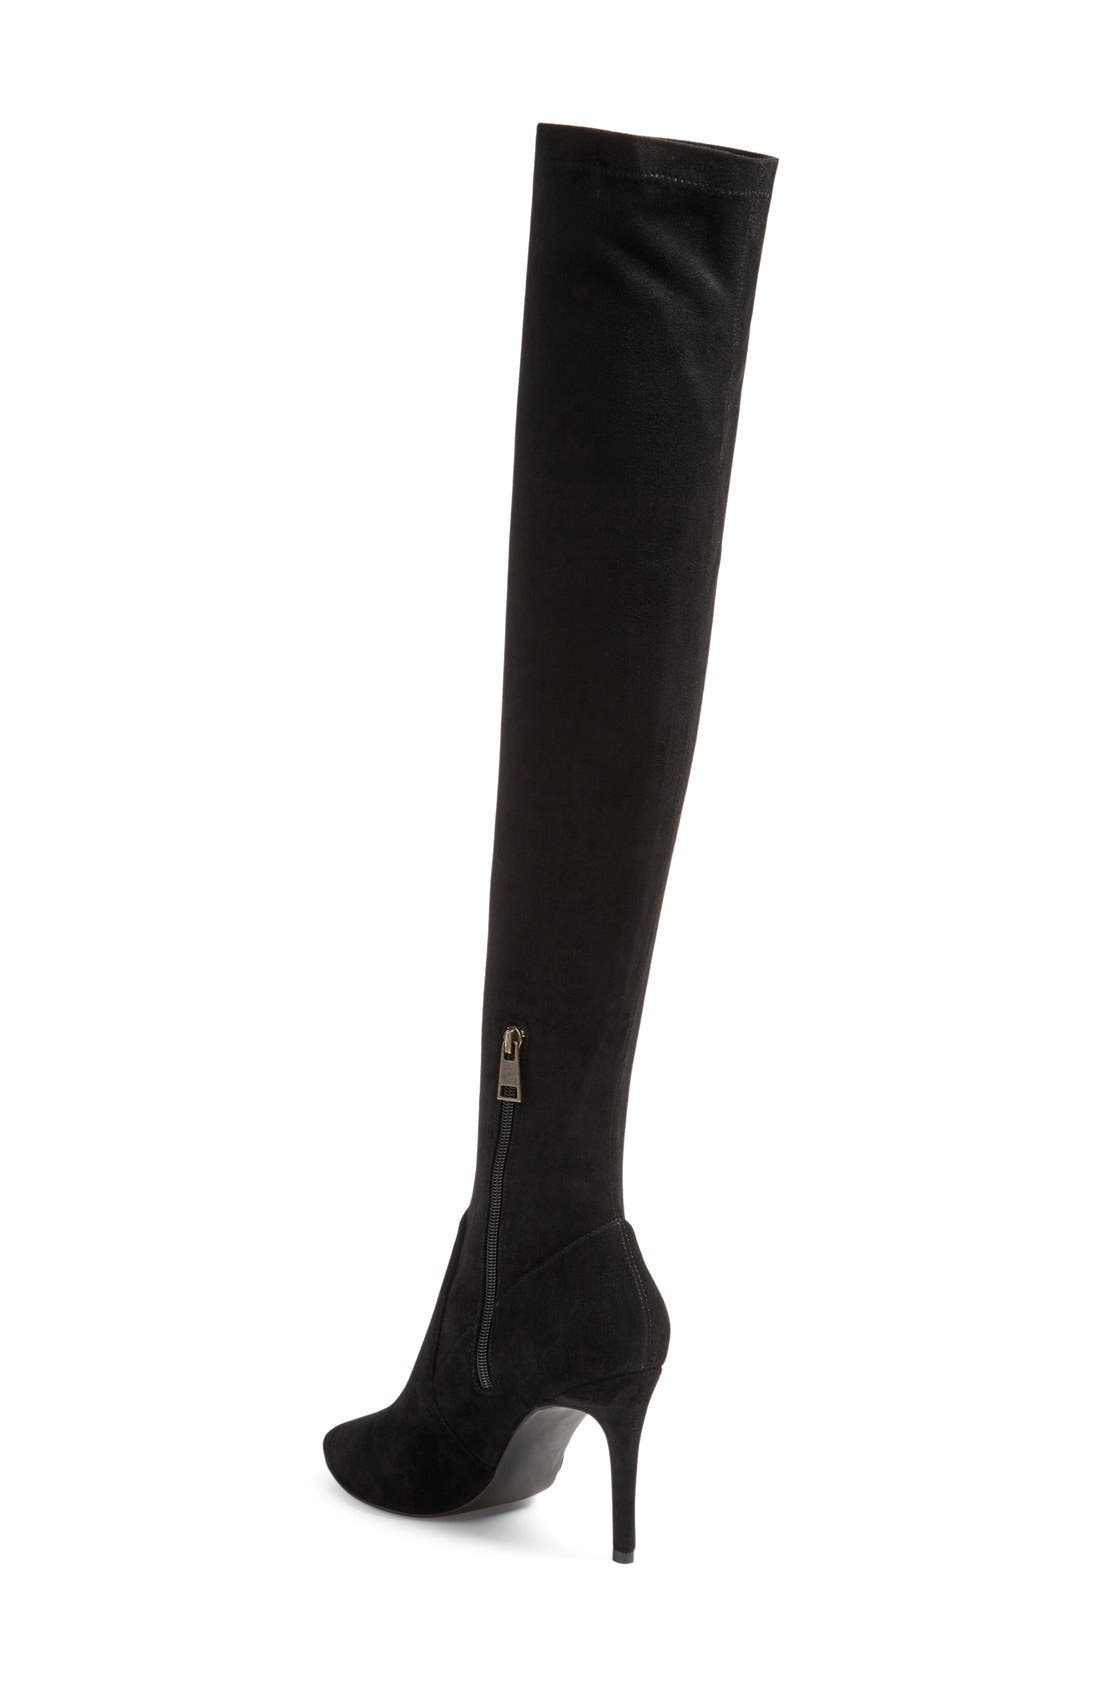 JOIE,                             'Jemina' Over the Knee Boot,                             Alternate thumbnail 4, color,                             001